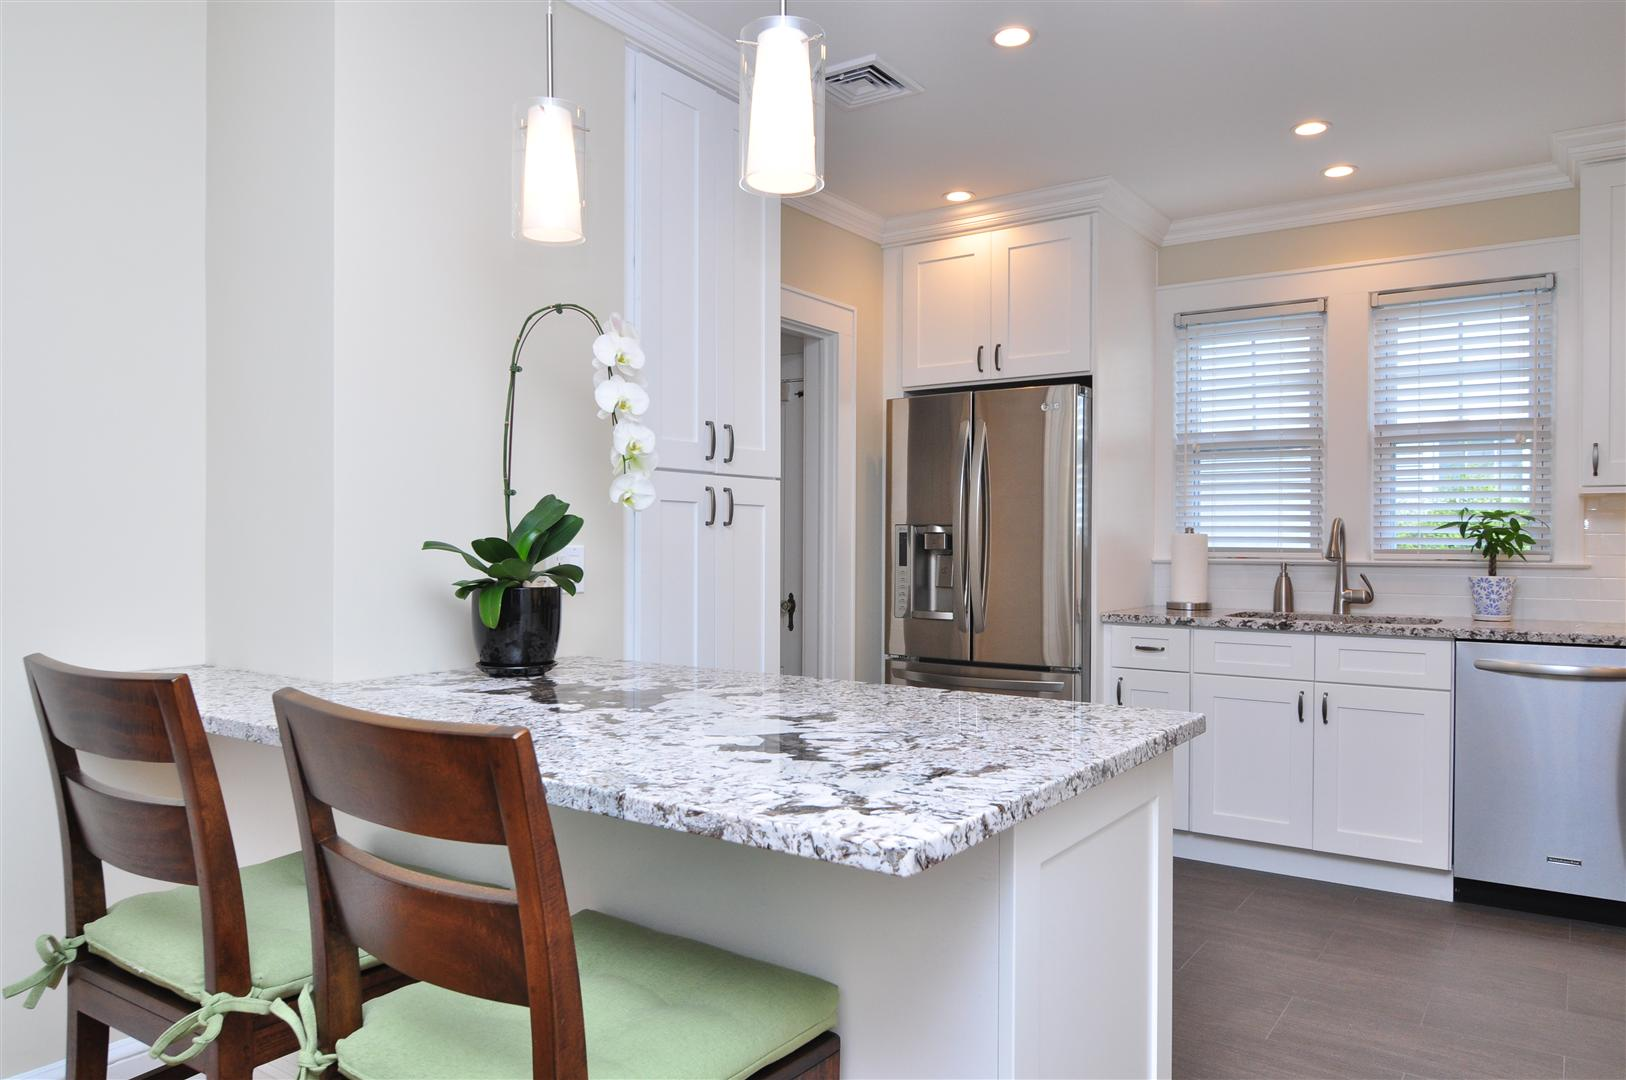 Aspen%252520White%252520Shaker%252520Kitchen%2525203